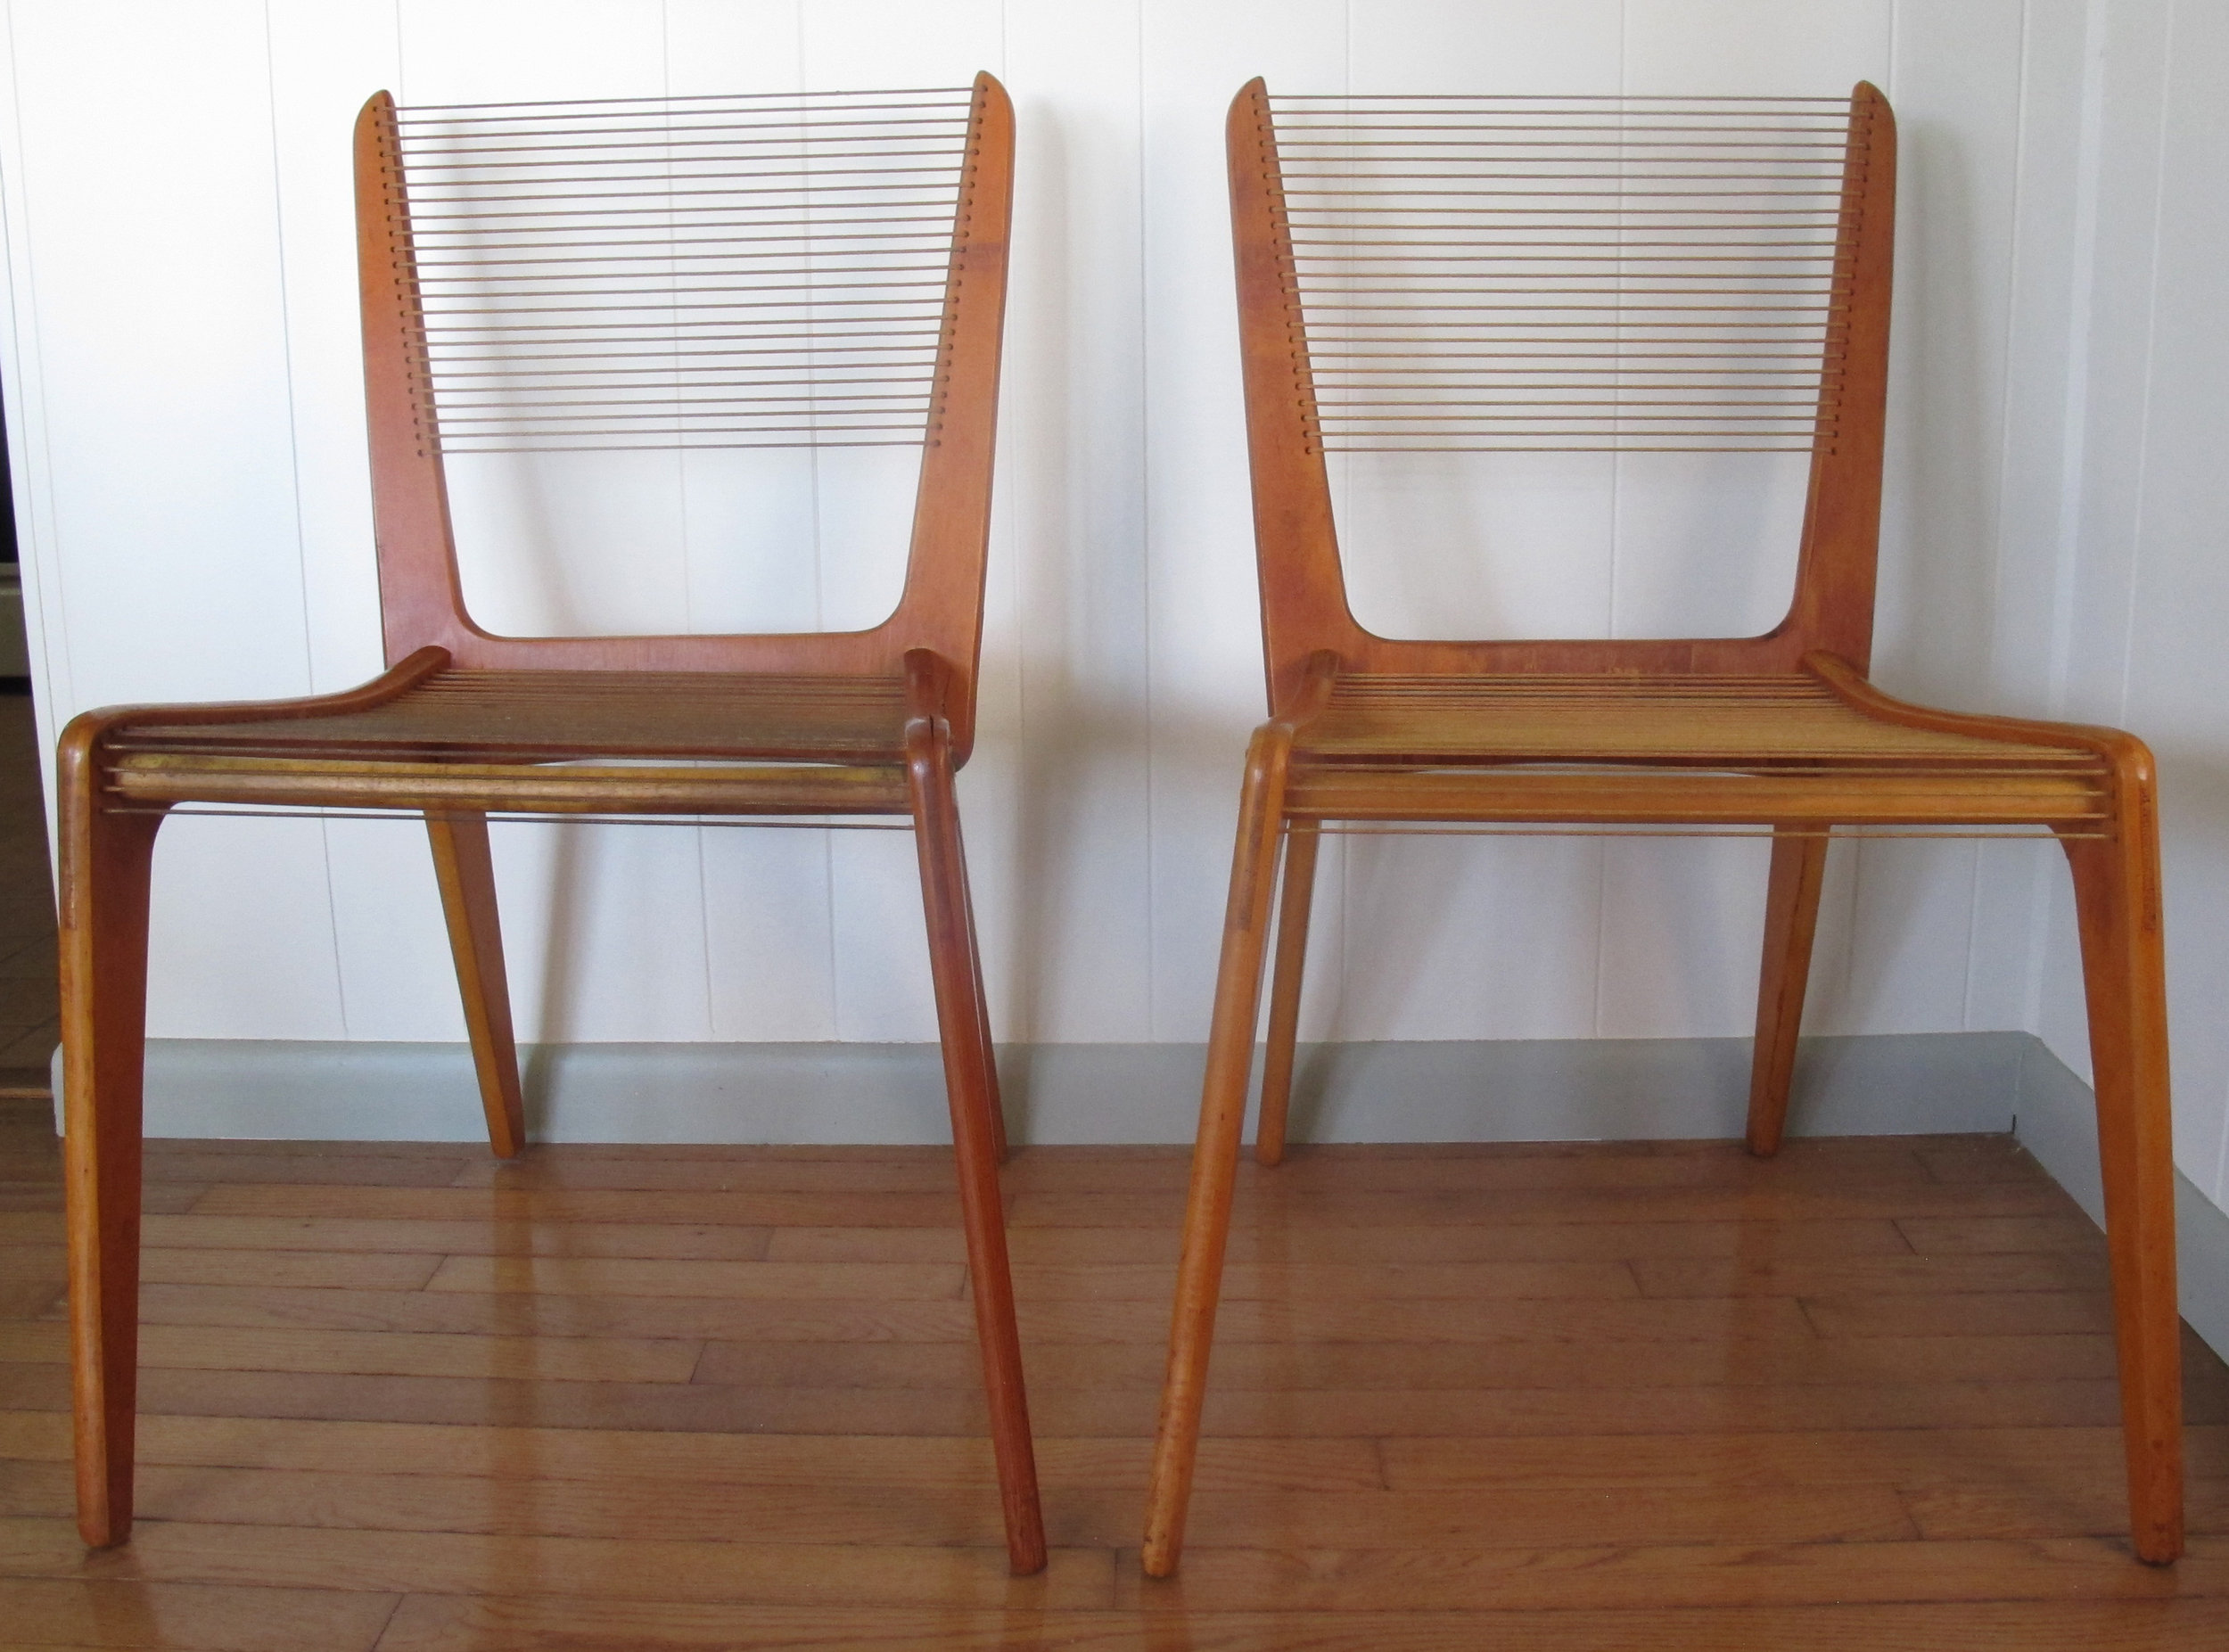 PAIR OF MID CENTURY CORD CHAIRS BY JACQUES GUILLON